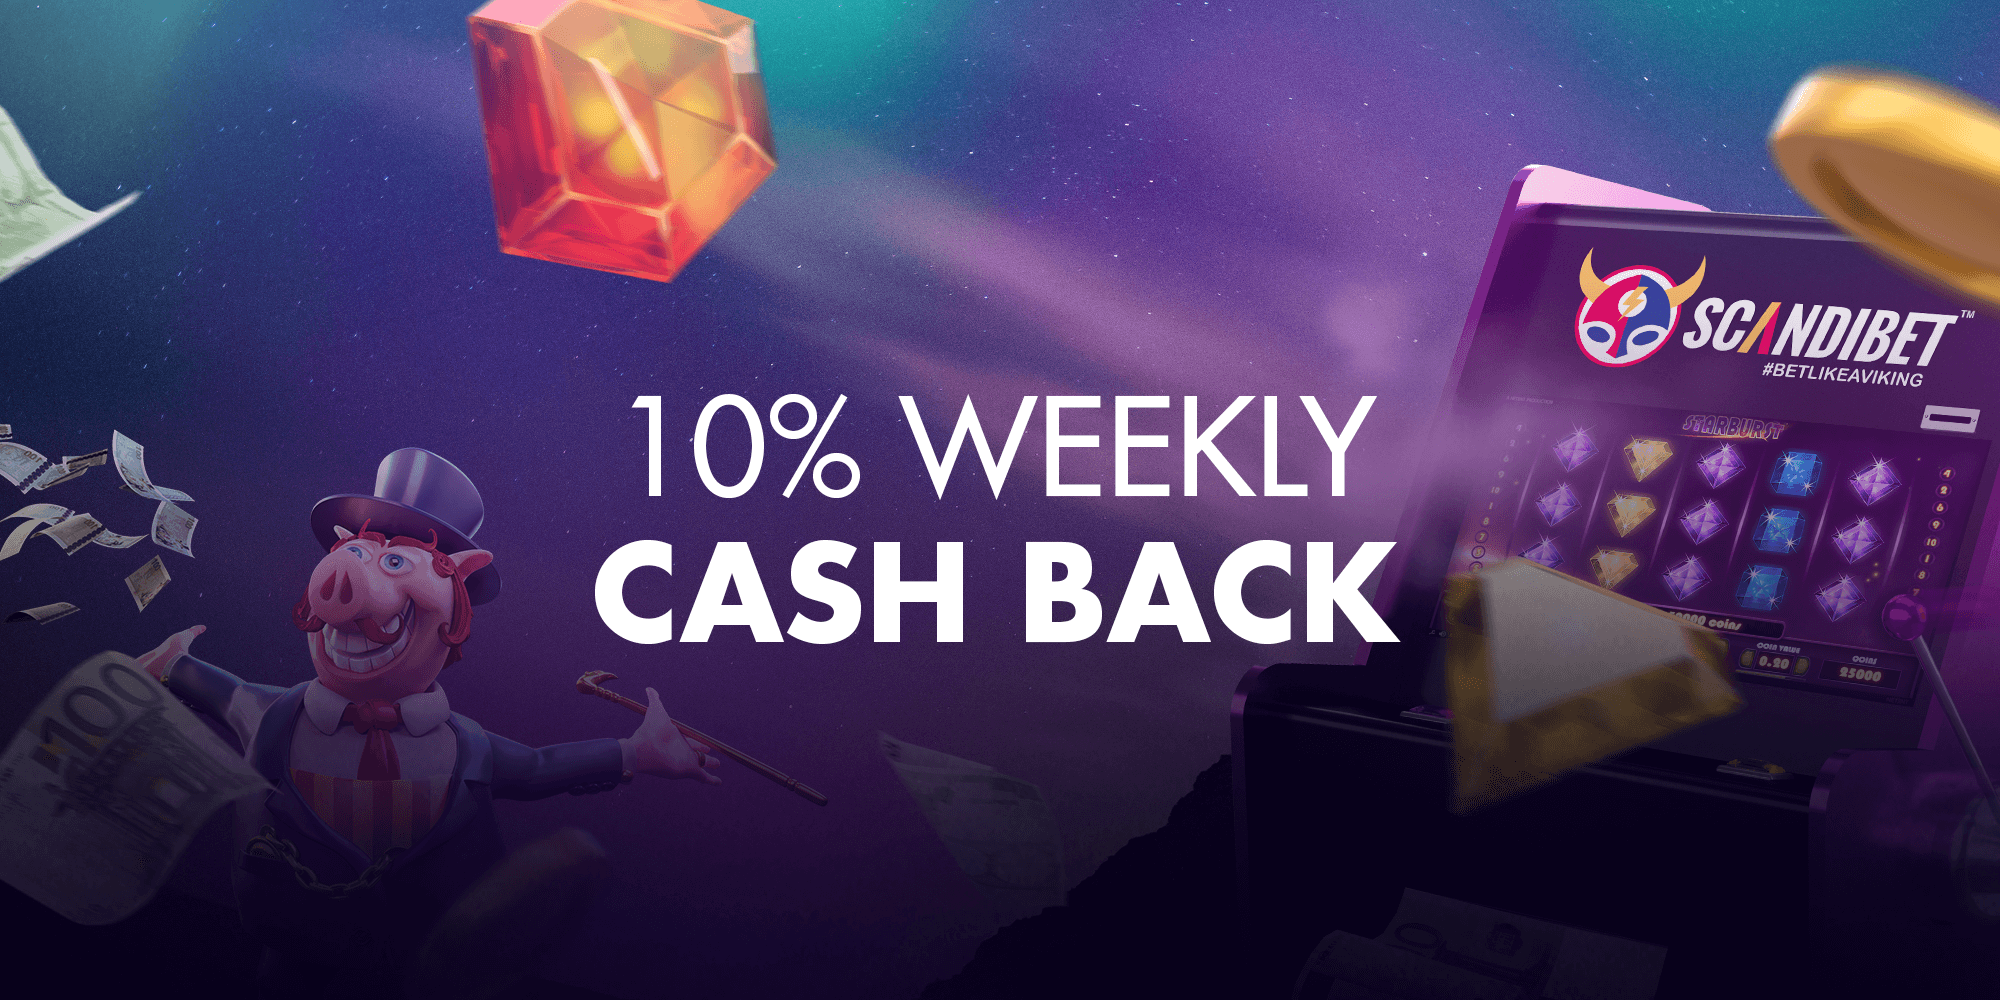 ScandiBet-cash-back